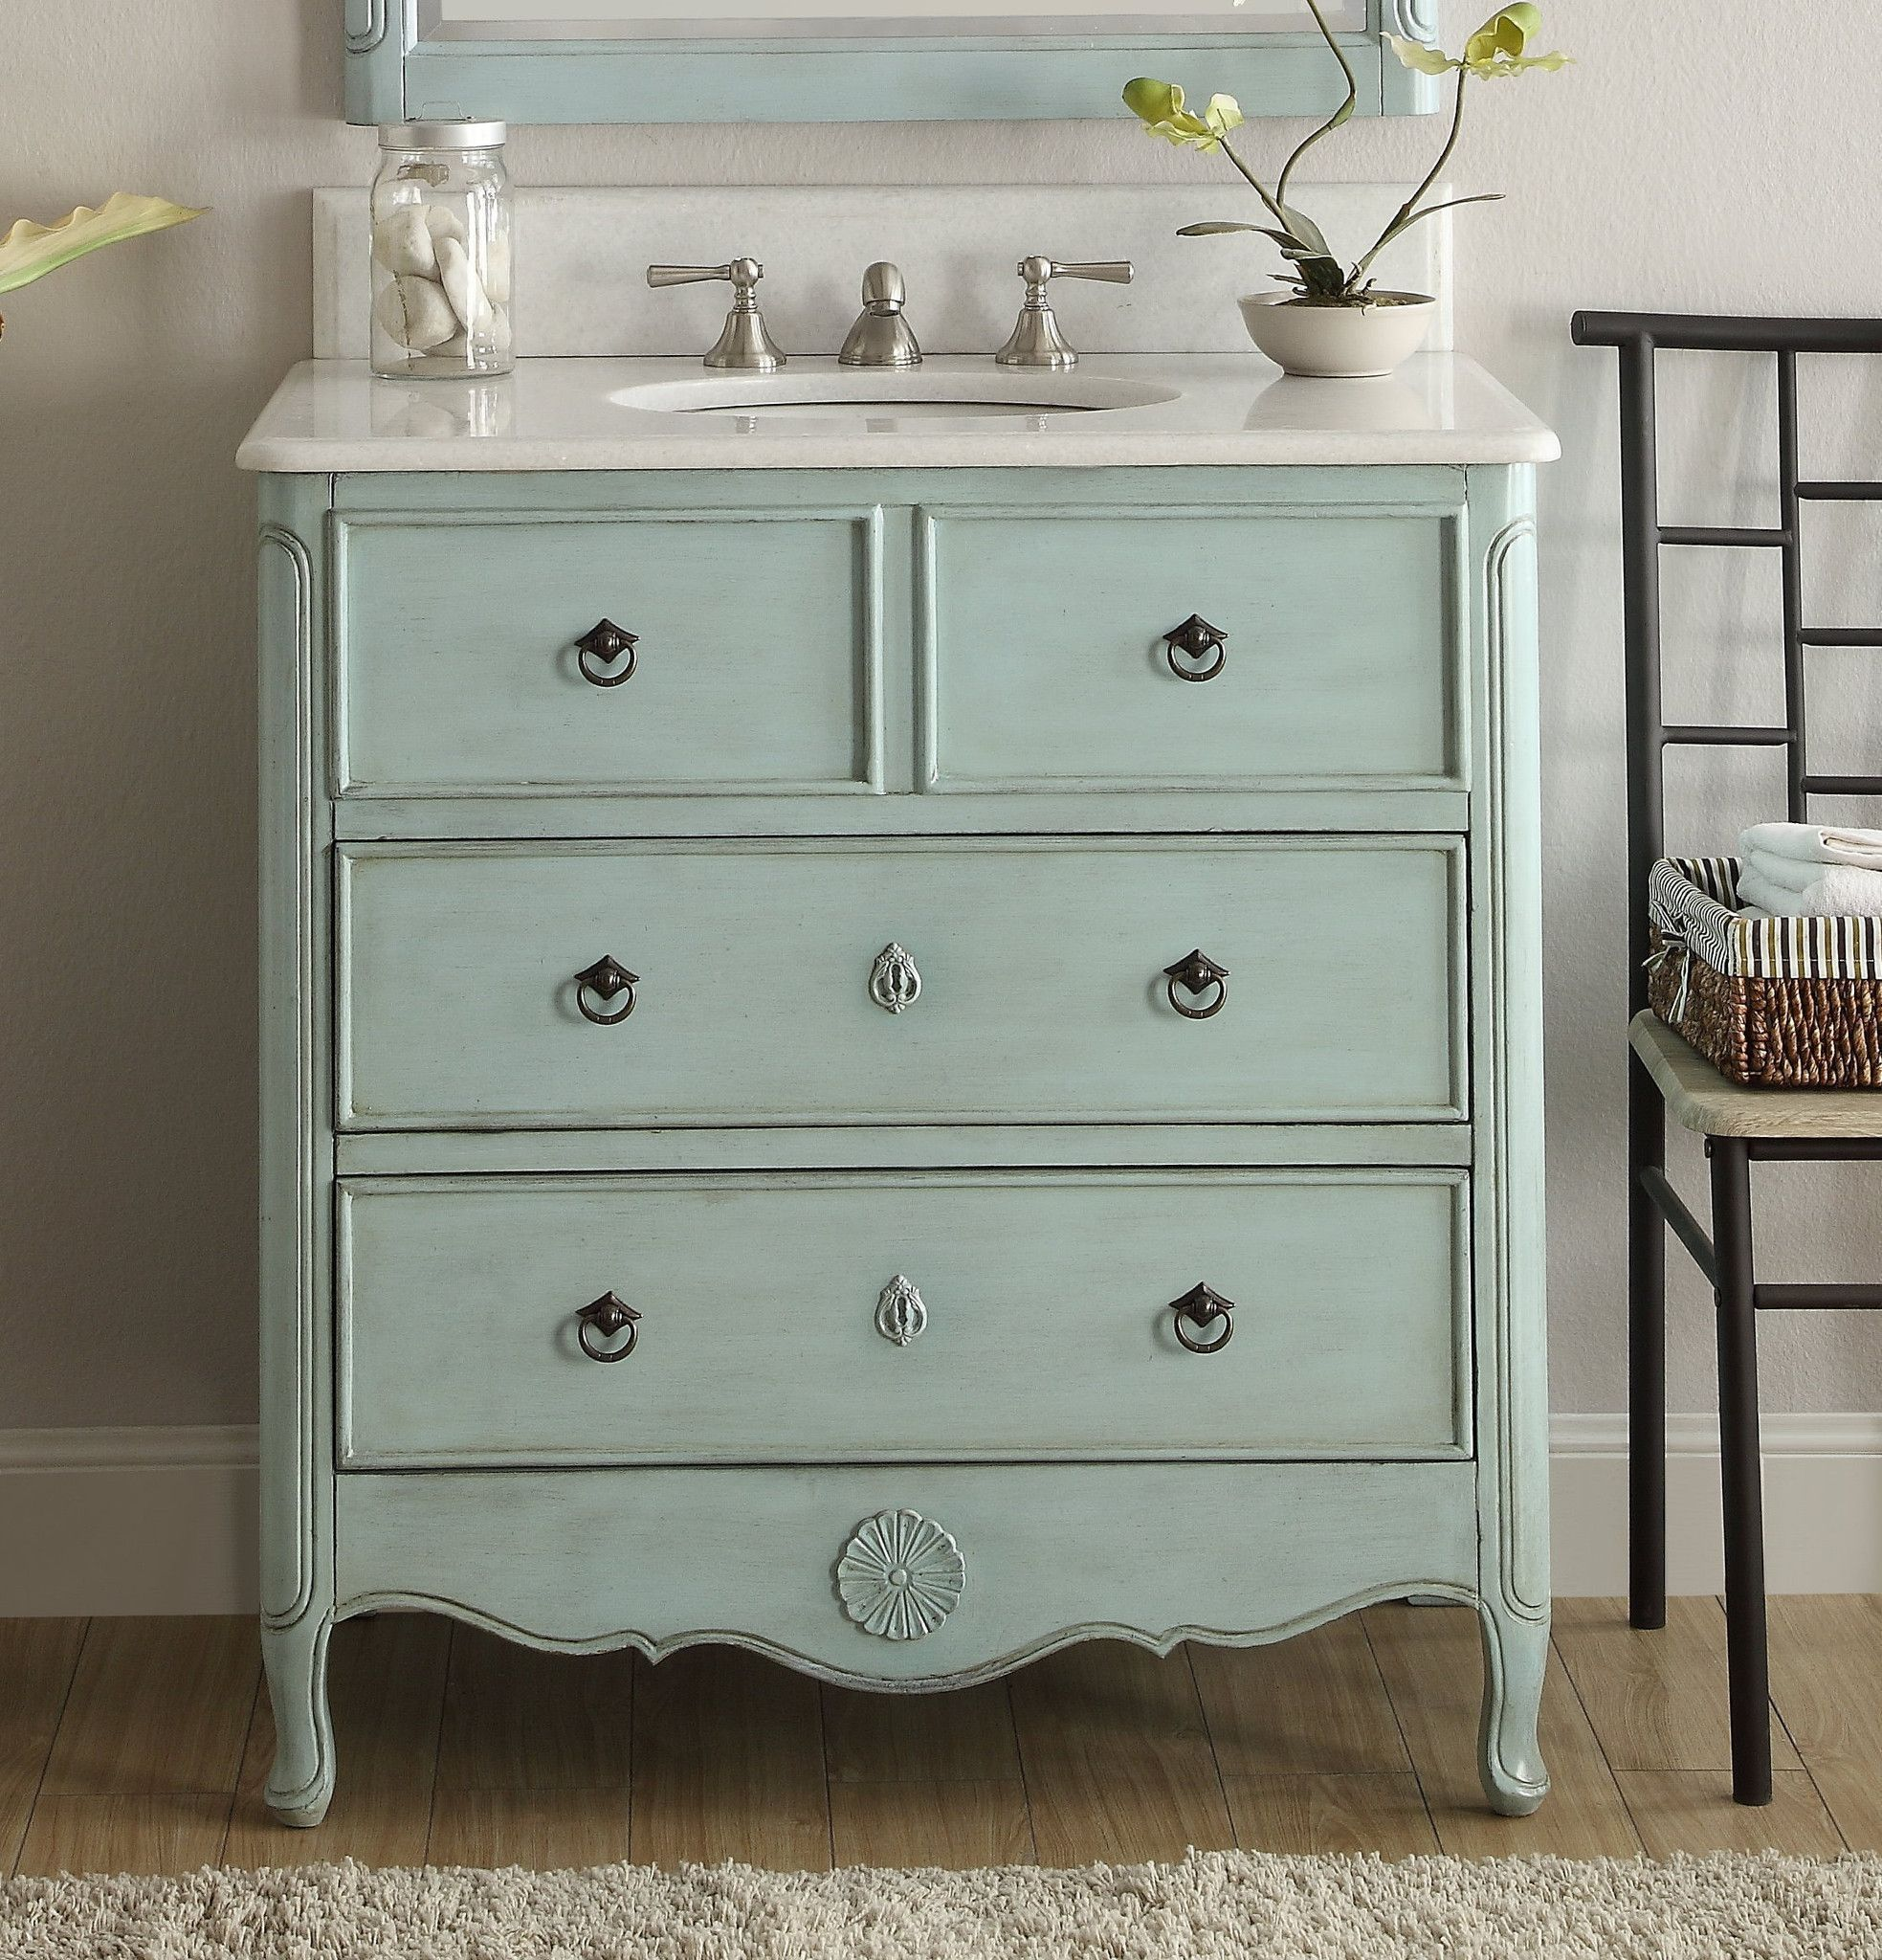 P Chans Furniture Hf081lb Daleville 34 Inch Distressed Blue